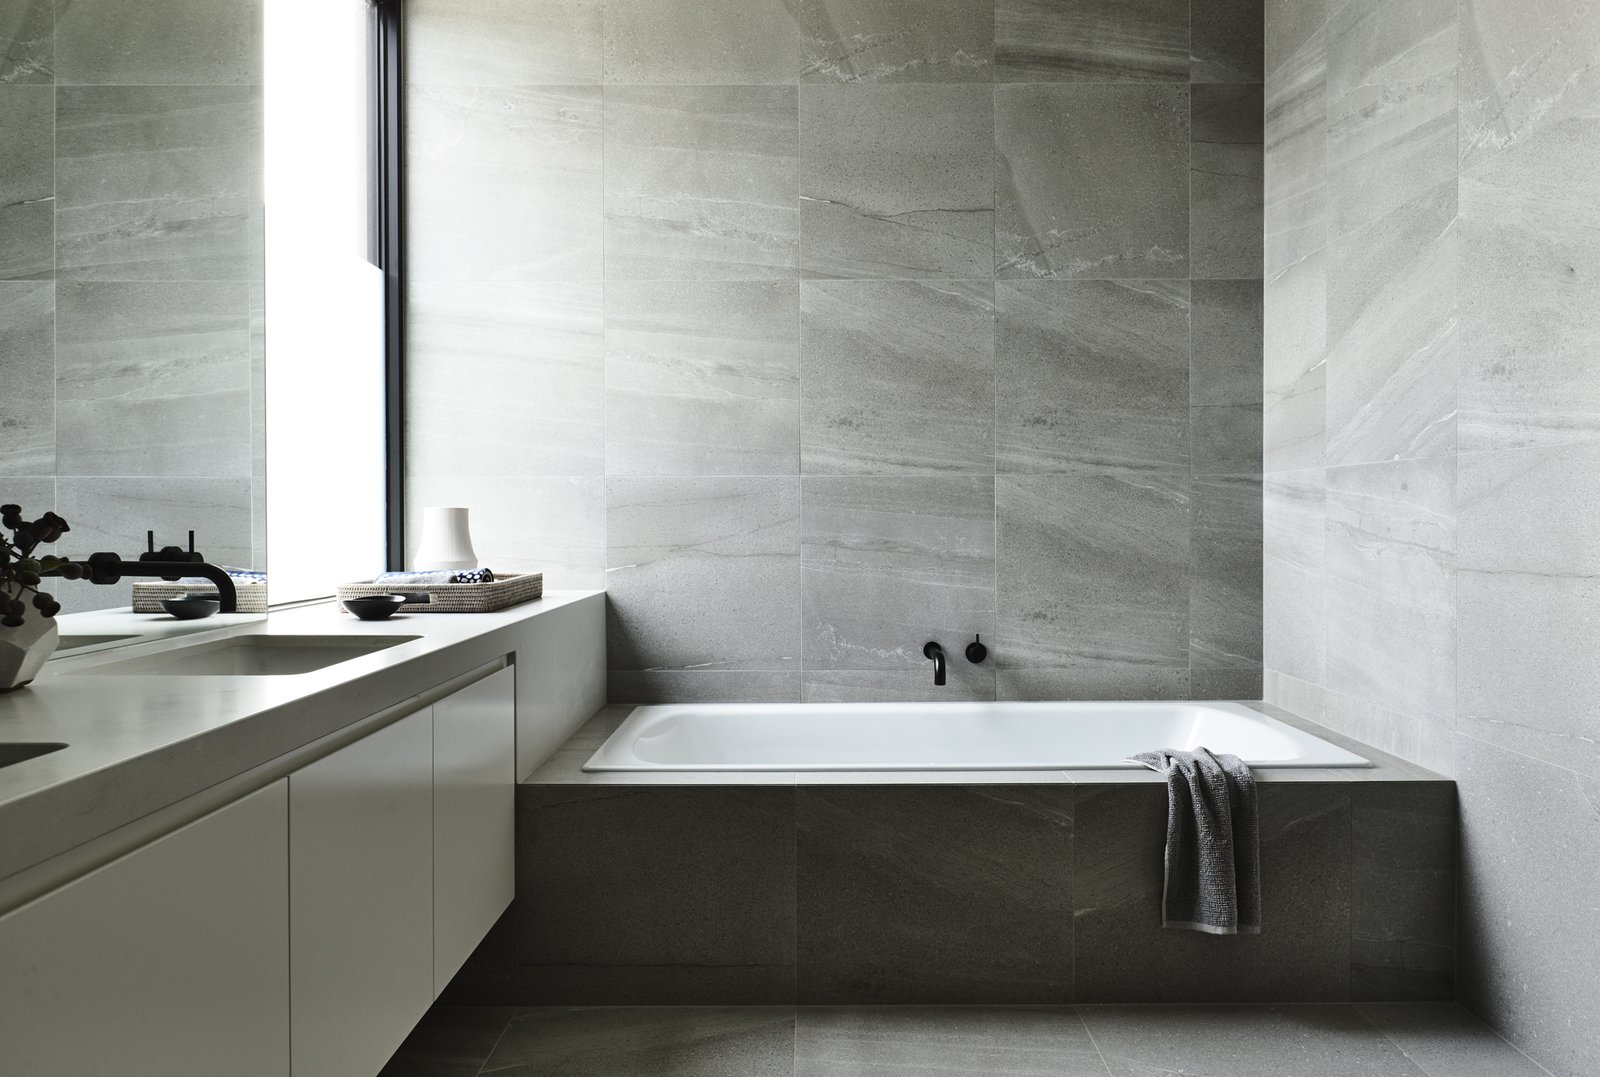 Bath Room, Drop In Tub, Porcelain Tile Floor, Porcelain Tile Wall, and Stone Counter Canny 'The New' Bathroom  The New